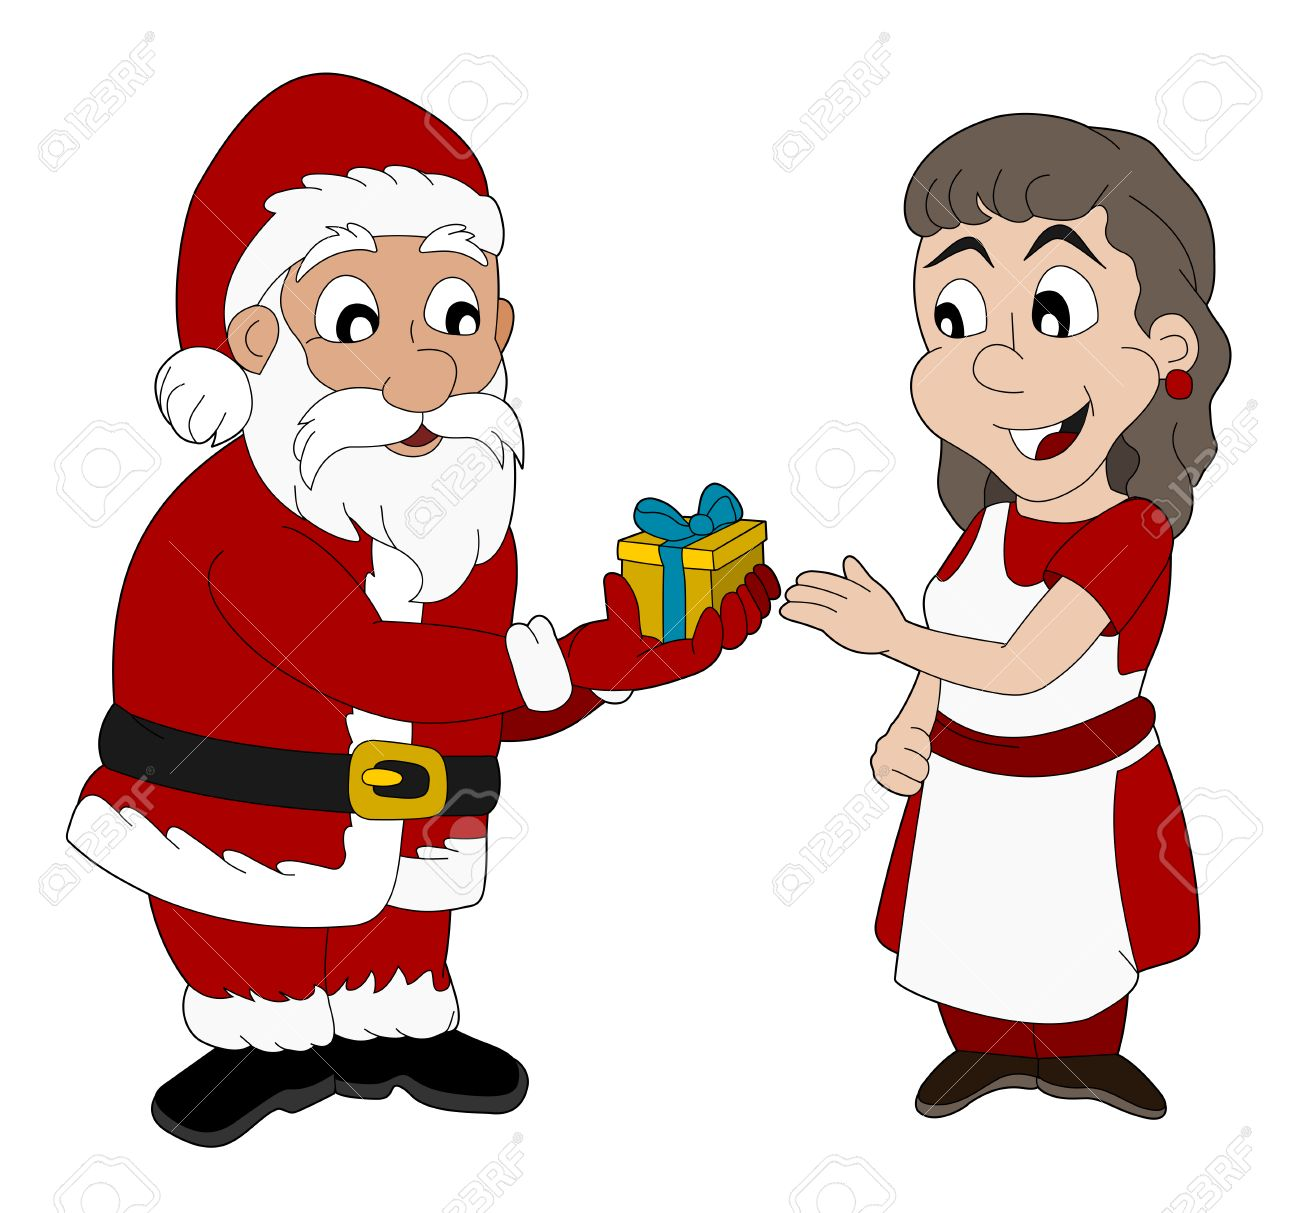 Christmas Illustration Of Santa Claus Giving A Present To Mrs Claus Stock Vector 23842795